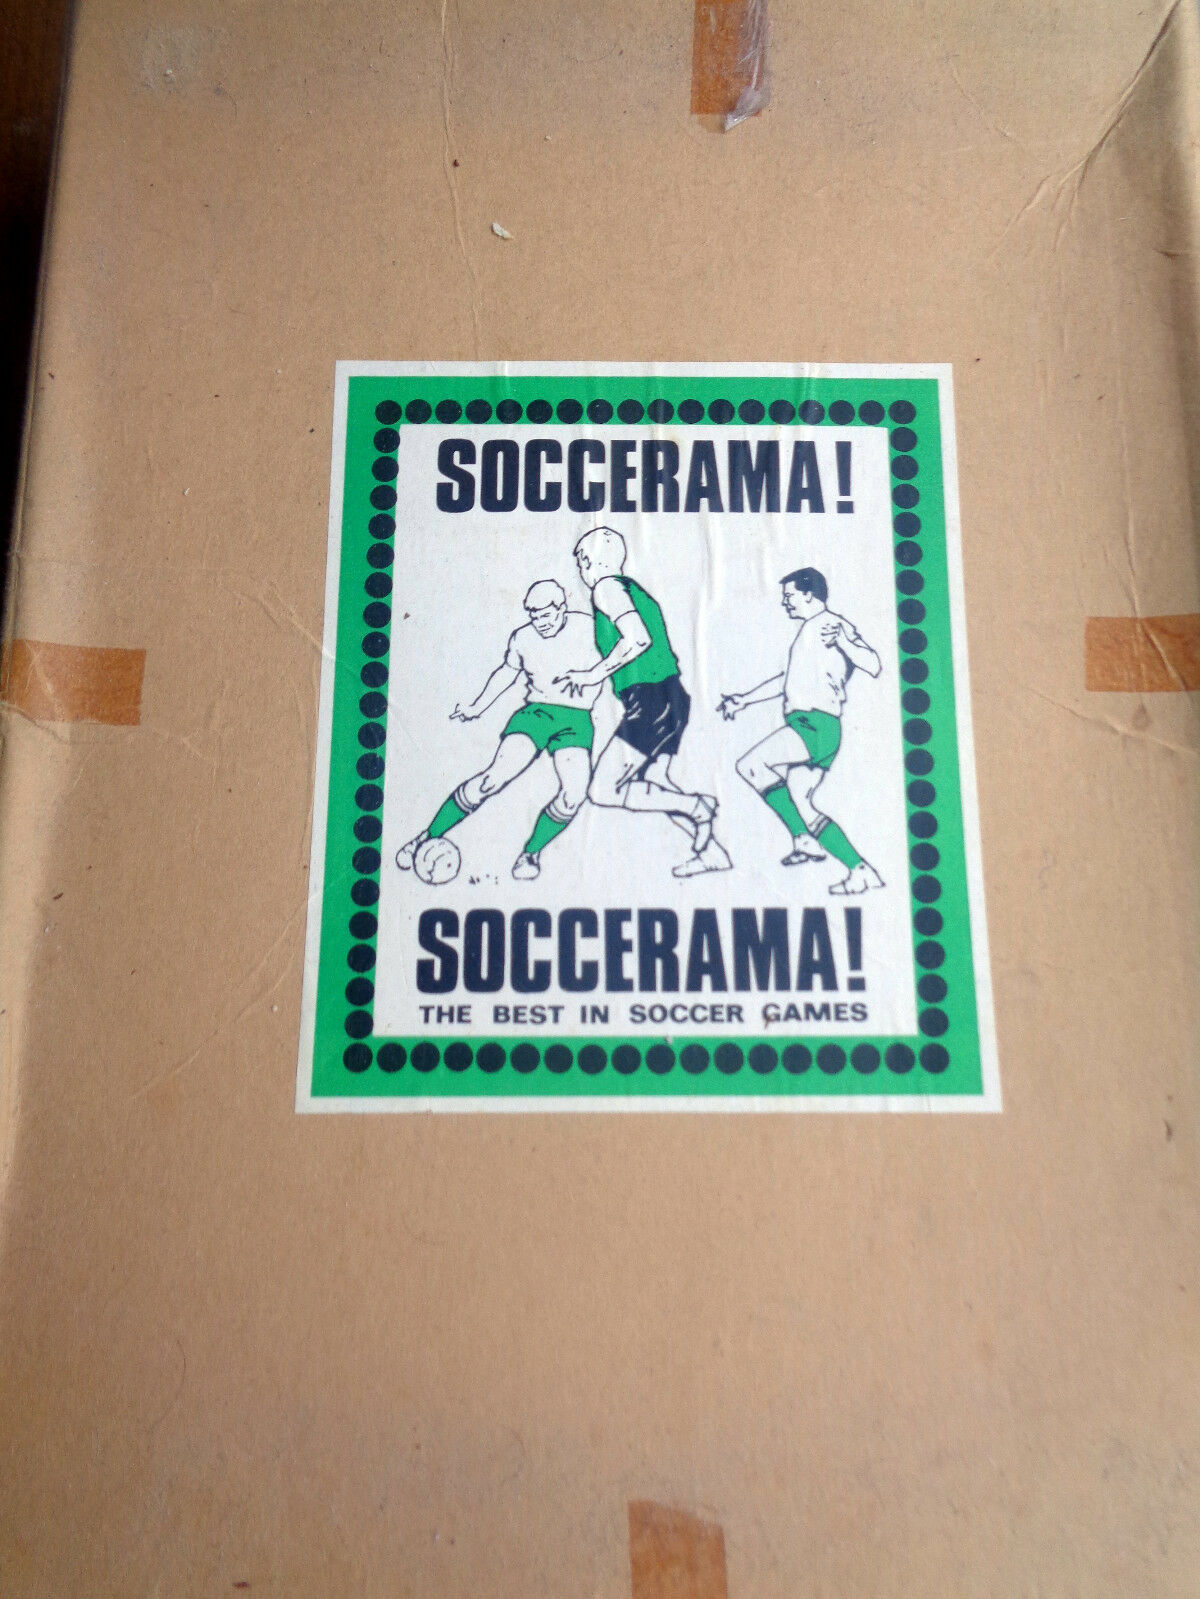 Rare Soccerama Predotype edition 1960s one of only a few known to exist